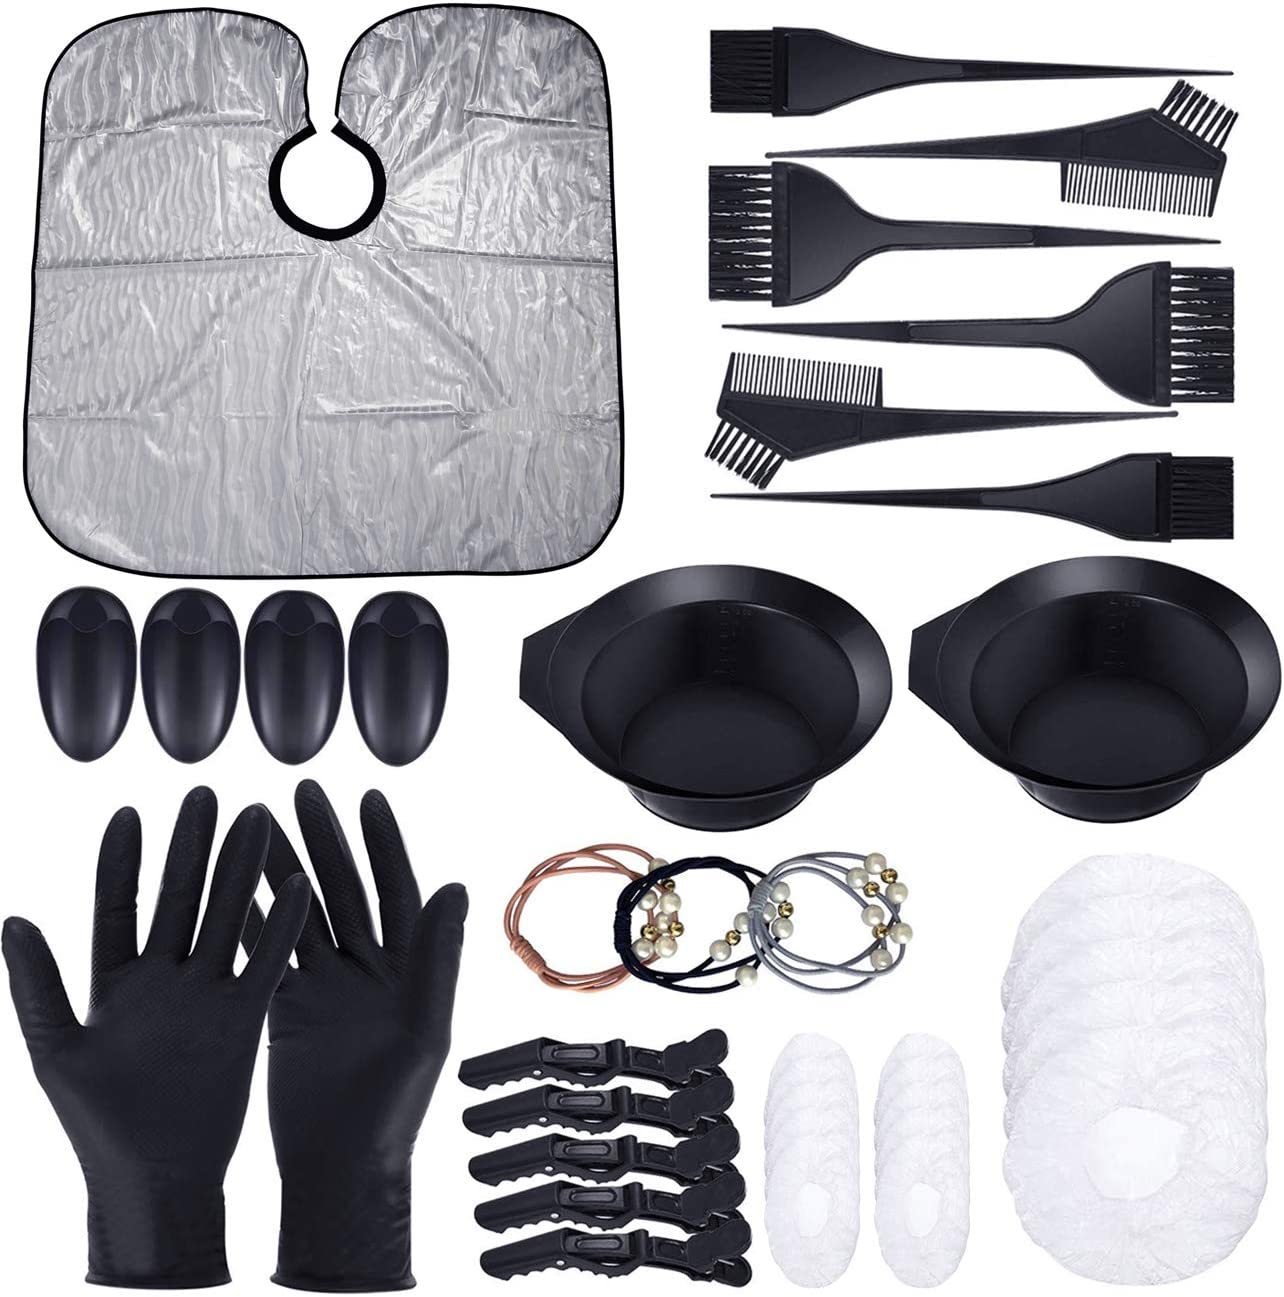 Cefanty 44 Pcs Hair Dye Coloring Kit,Hair Tinting Bowl,Dye Brush,Ear Cover,Hair Ties,Gloves for DIY Salon Hair Coloring Bleaching Dryers Tools